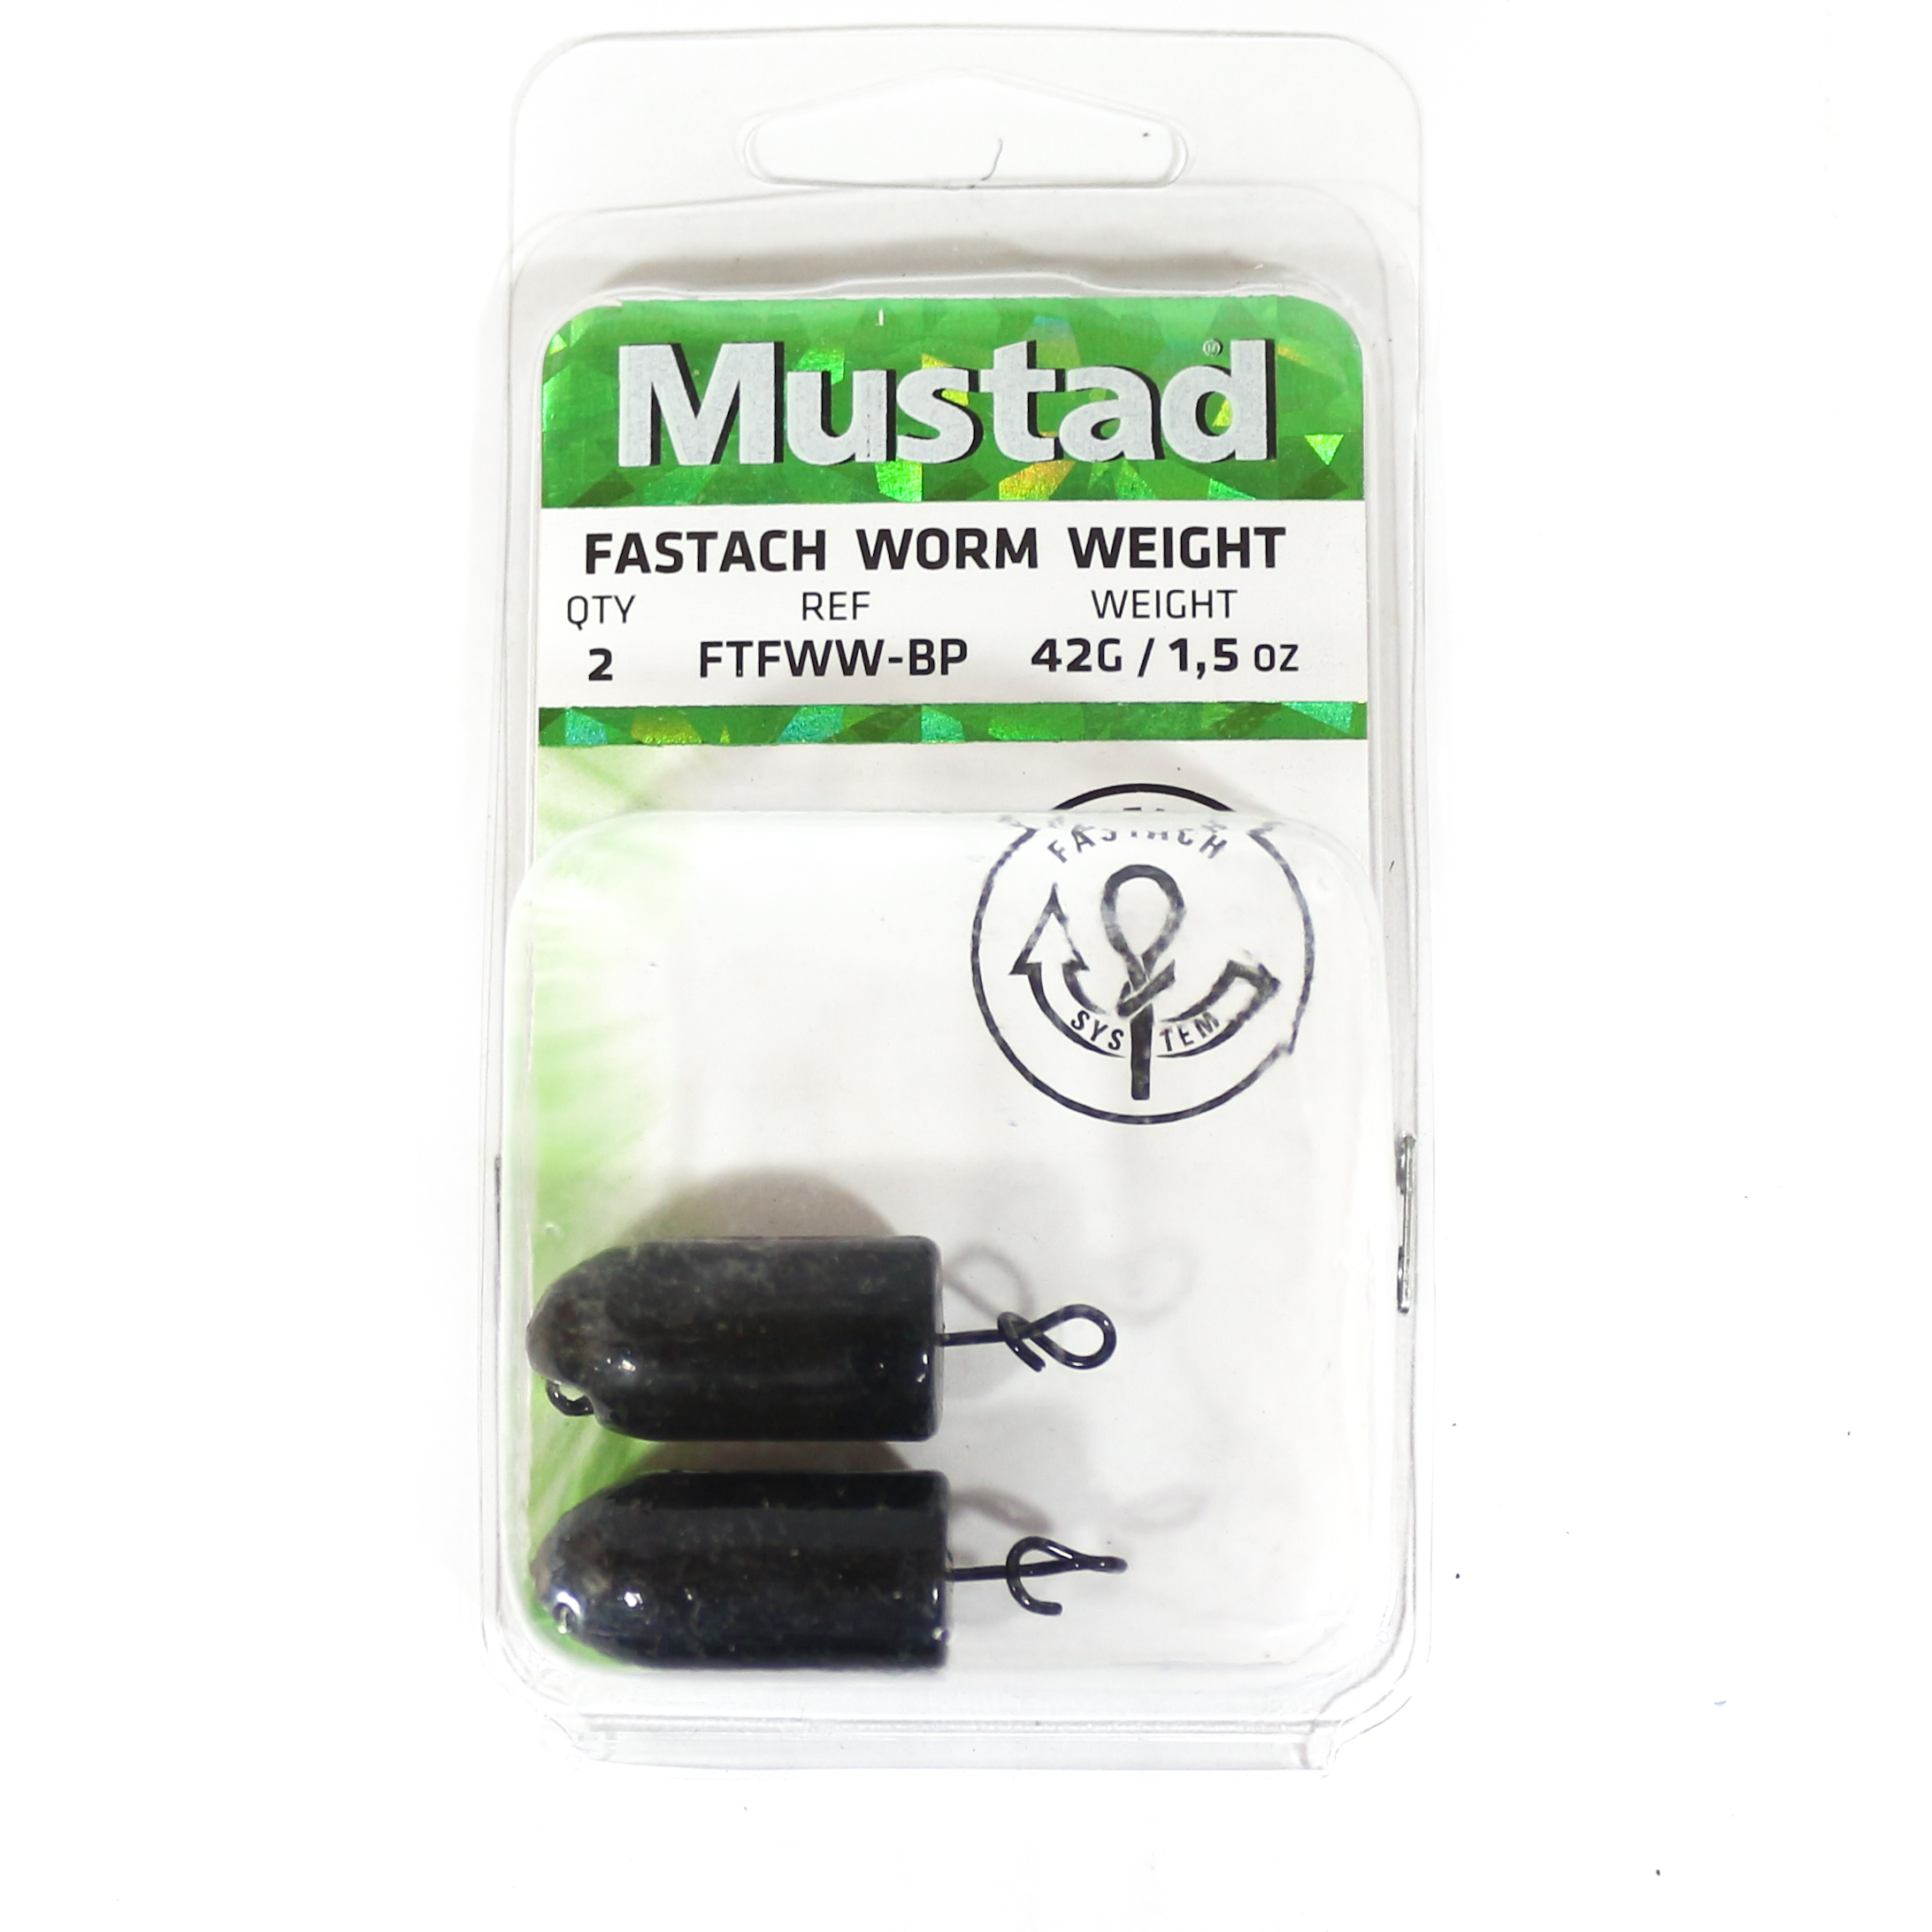 Mustad Worm Weight Fastach 1.5 Oz Black (2241)